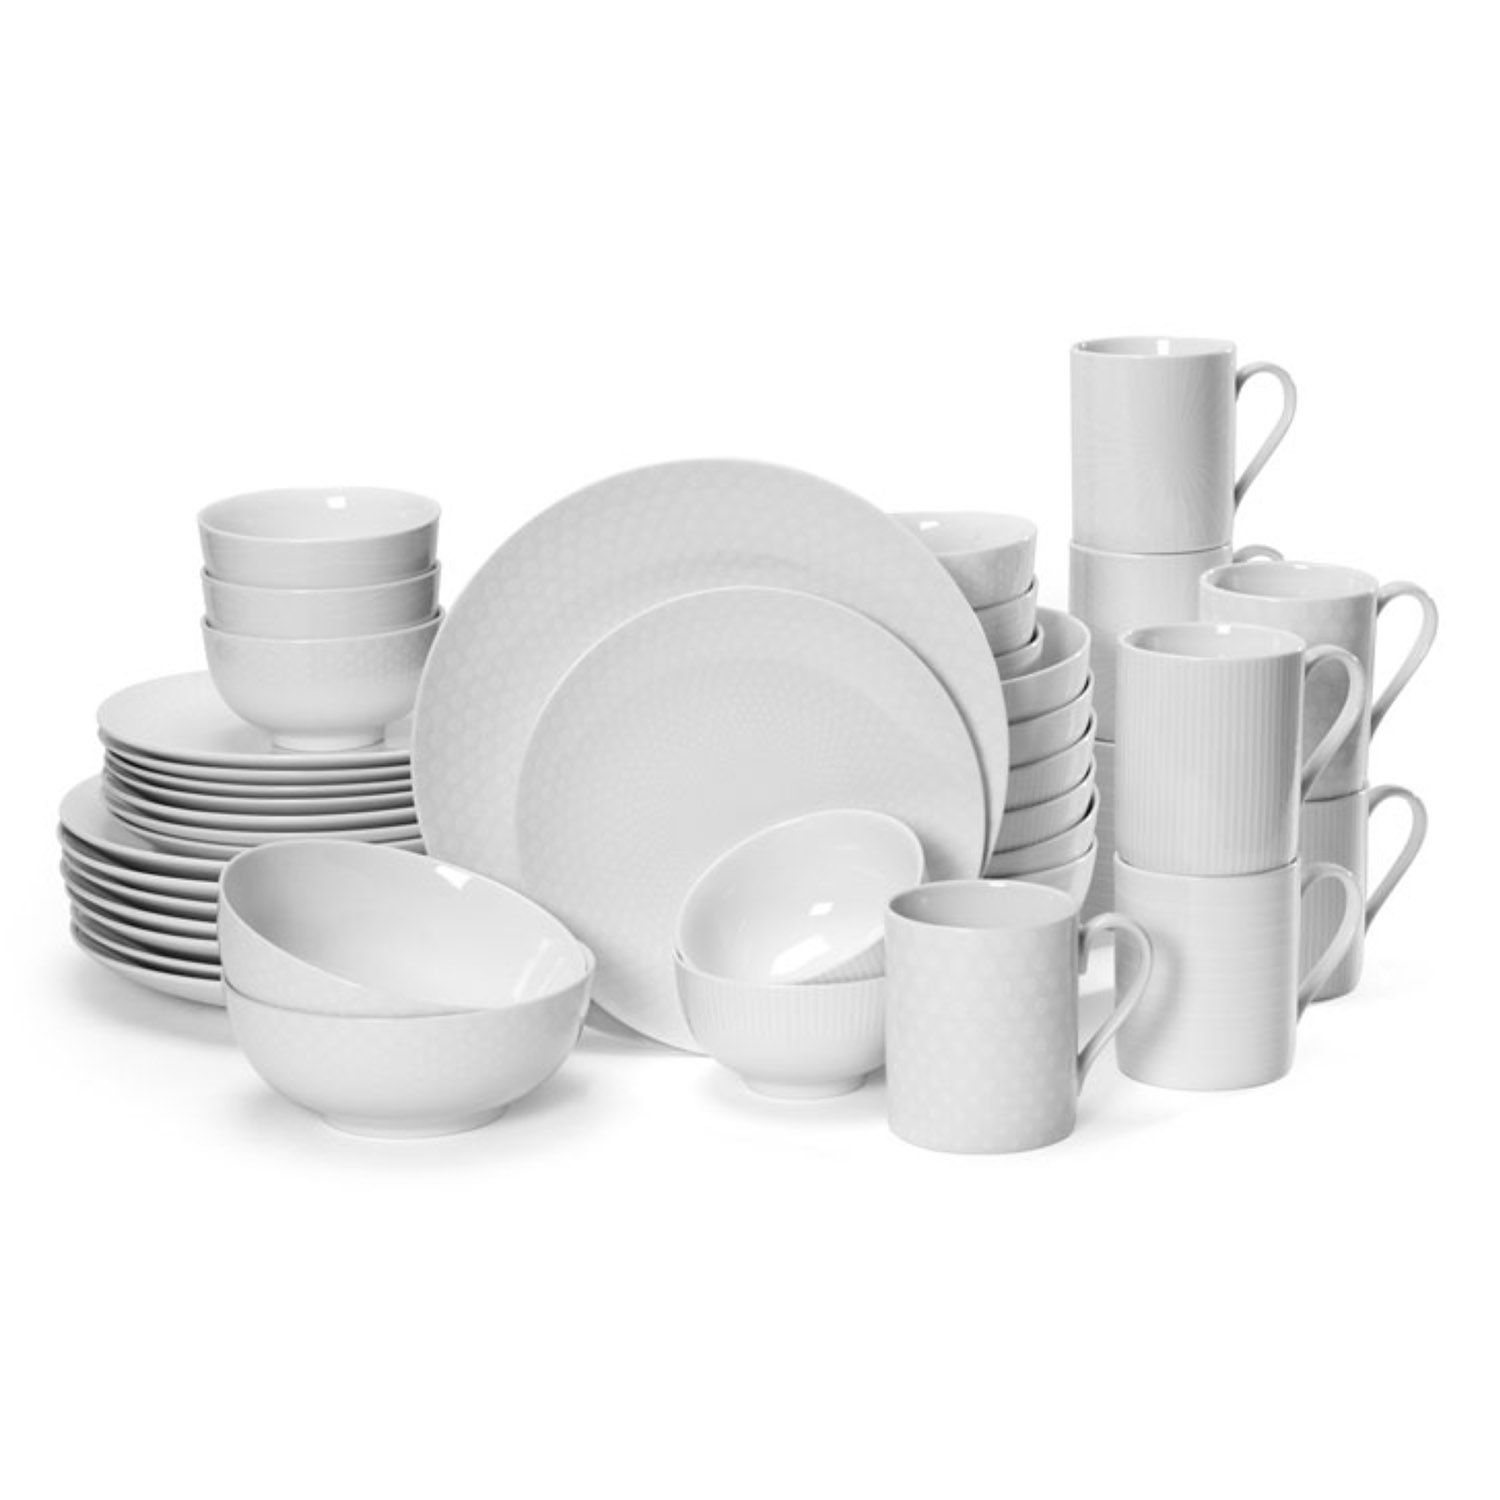 sc 1 st  Kohl\u0027s & Mikasa Cheers White 40-pc. Dinnerware Set